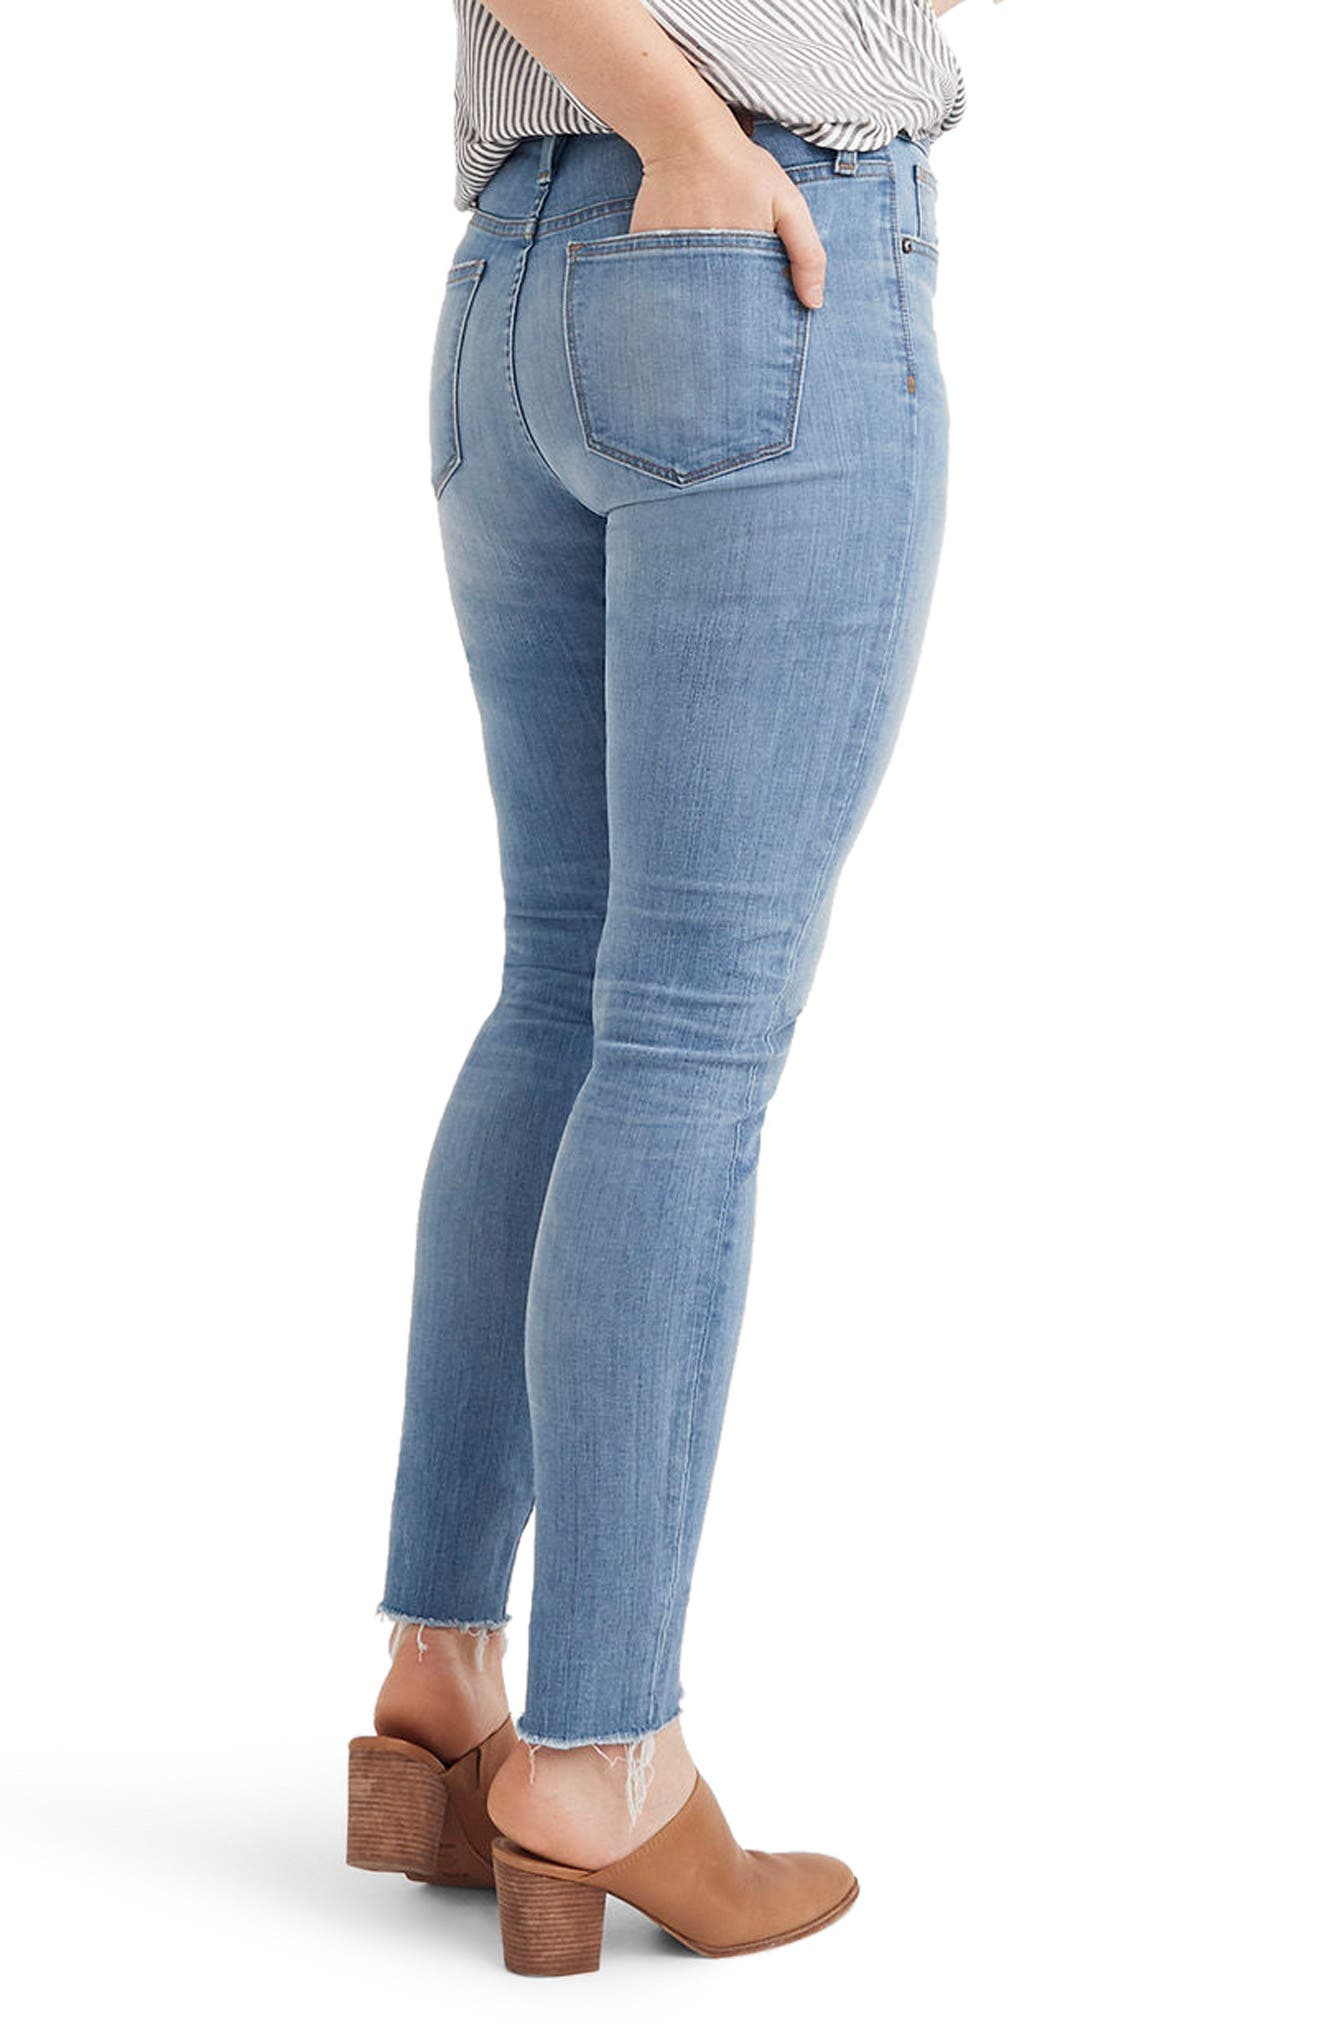 9-Inch High Waist Skinny Jeans,                             Alternate thumbnail 2, color,                             Ontario Wash